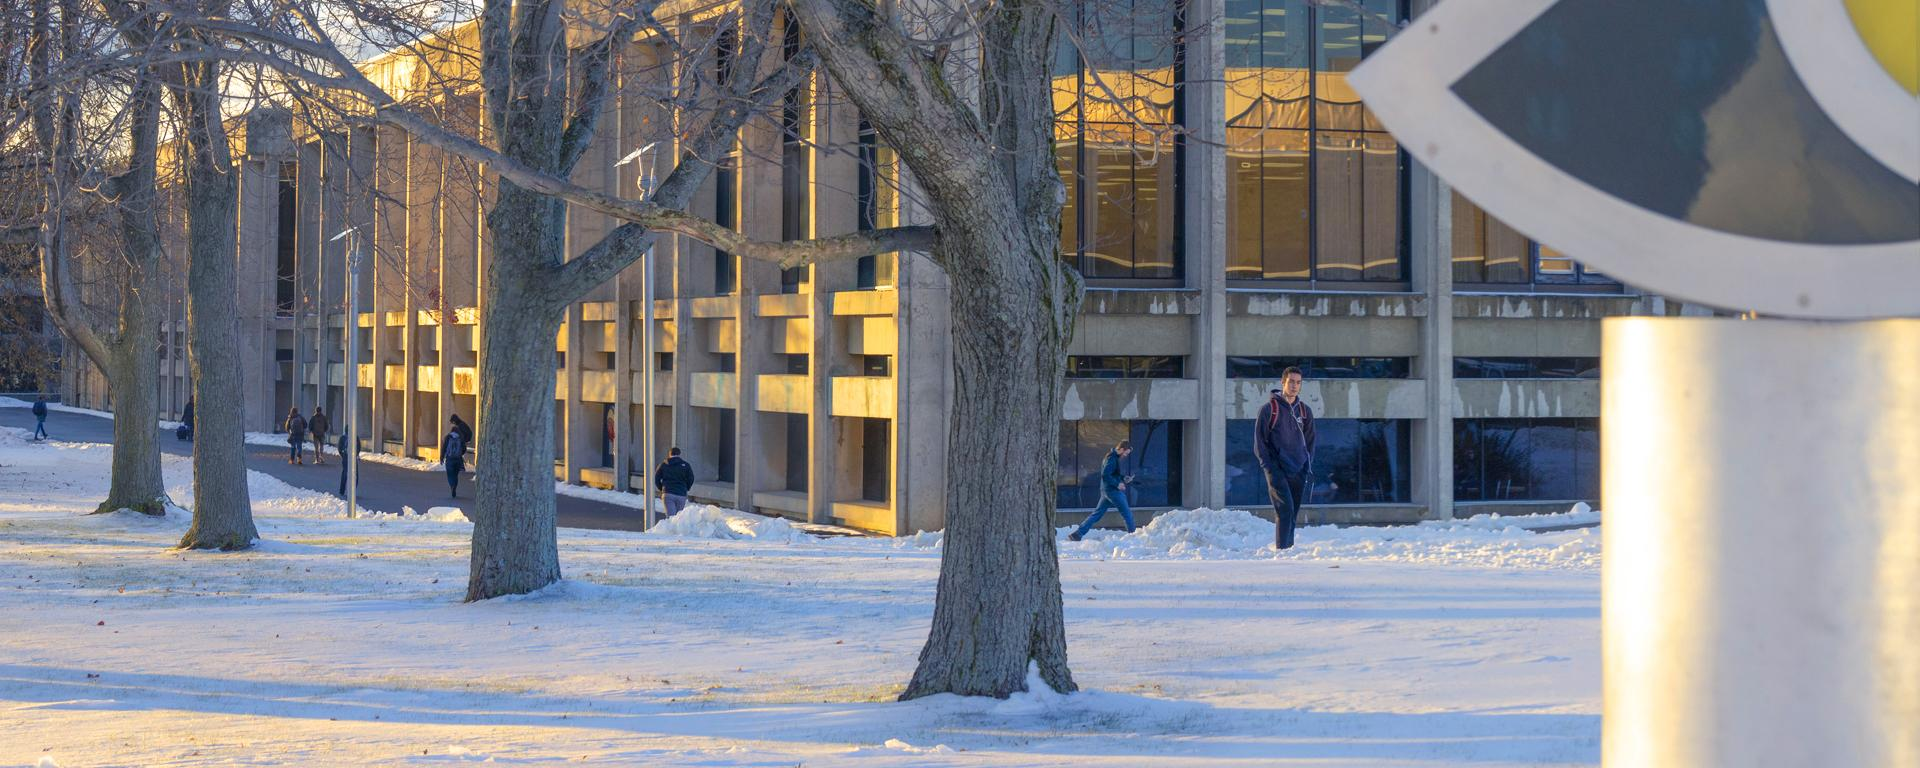 Snow-covered campus with students walking